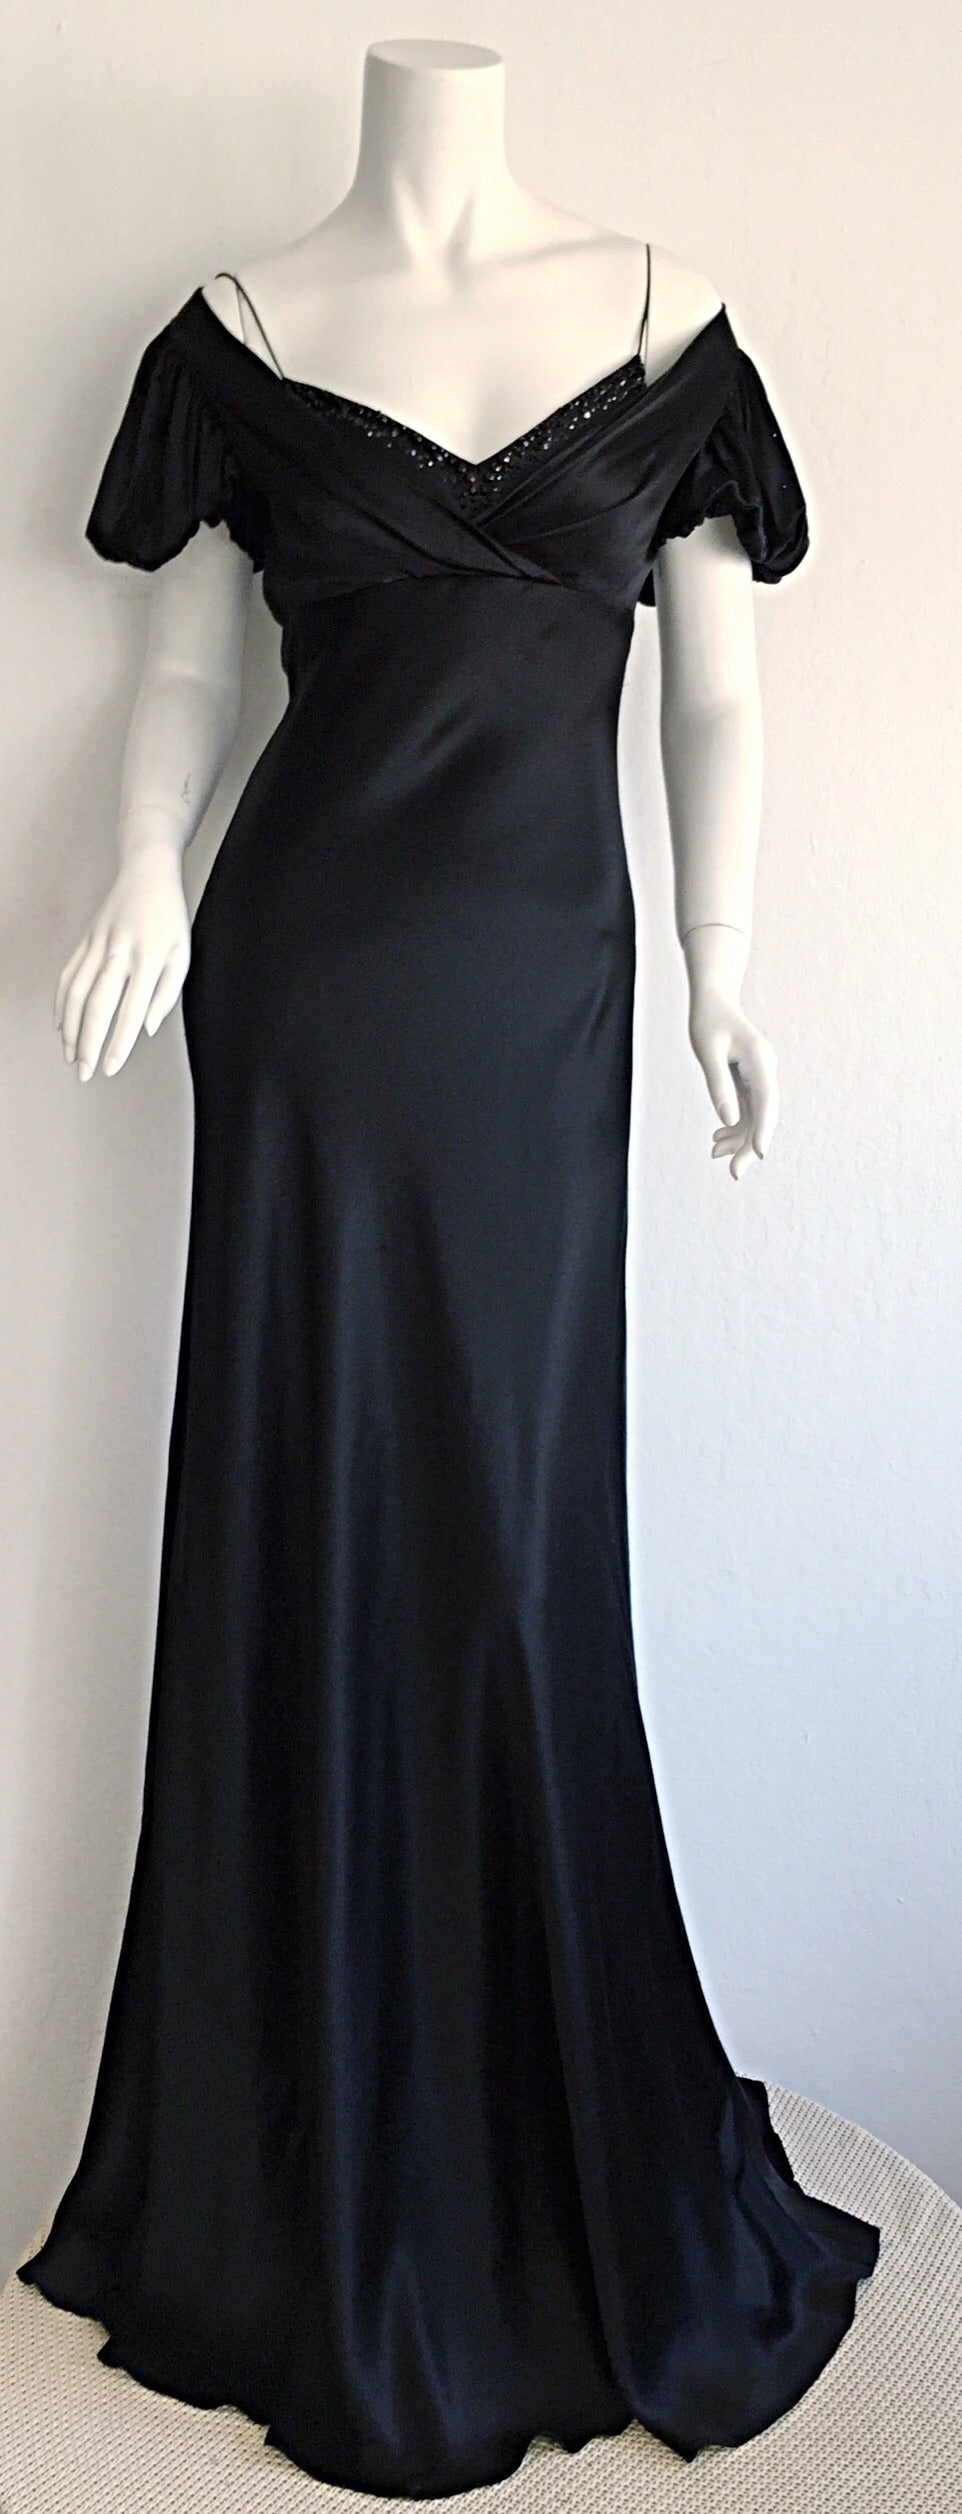 Stunning Jenny Packham 90s Vintage Black Silk Romantic ' Fluid ' Gown w/ Jewels For Sale 5